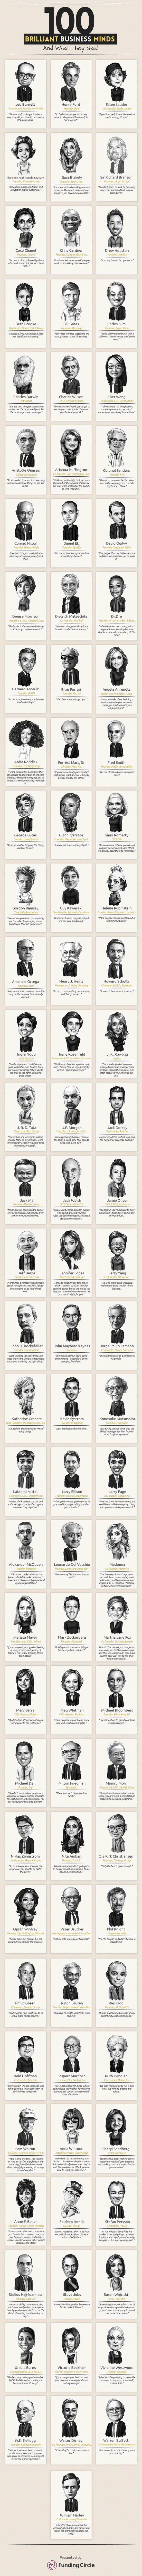 100 Brilliant Minds and what they said